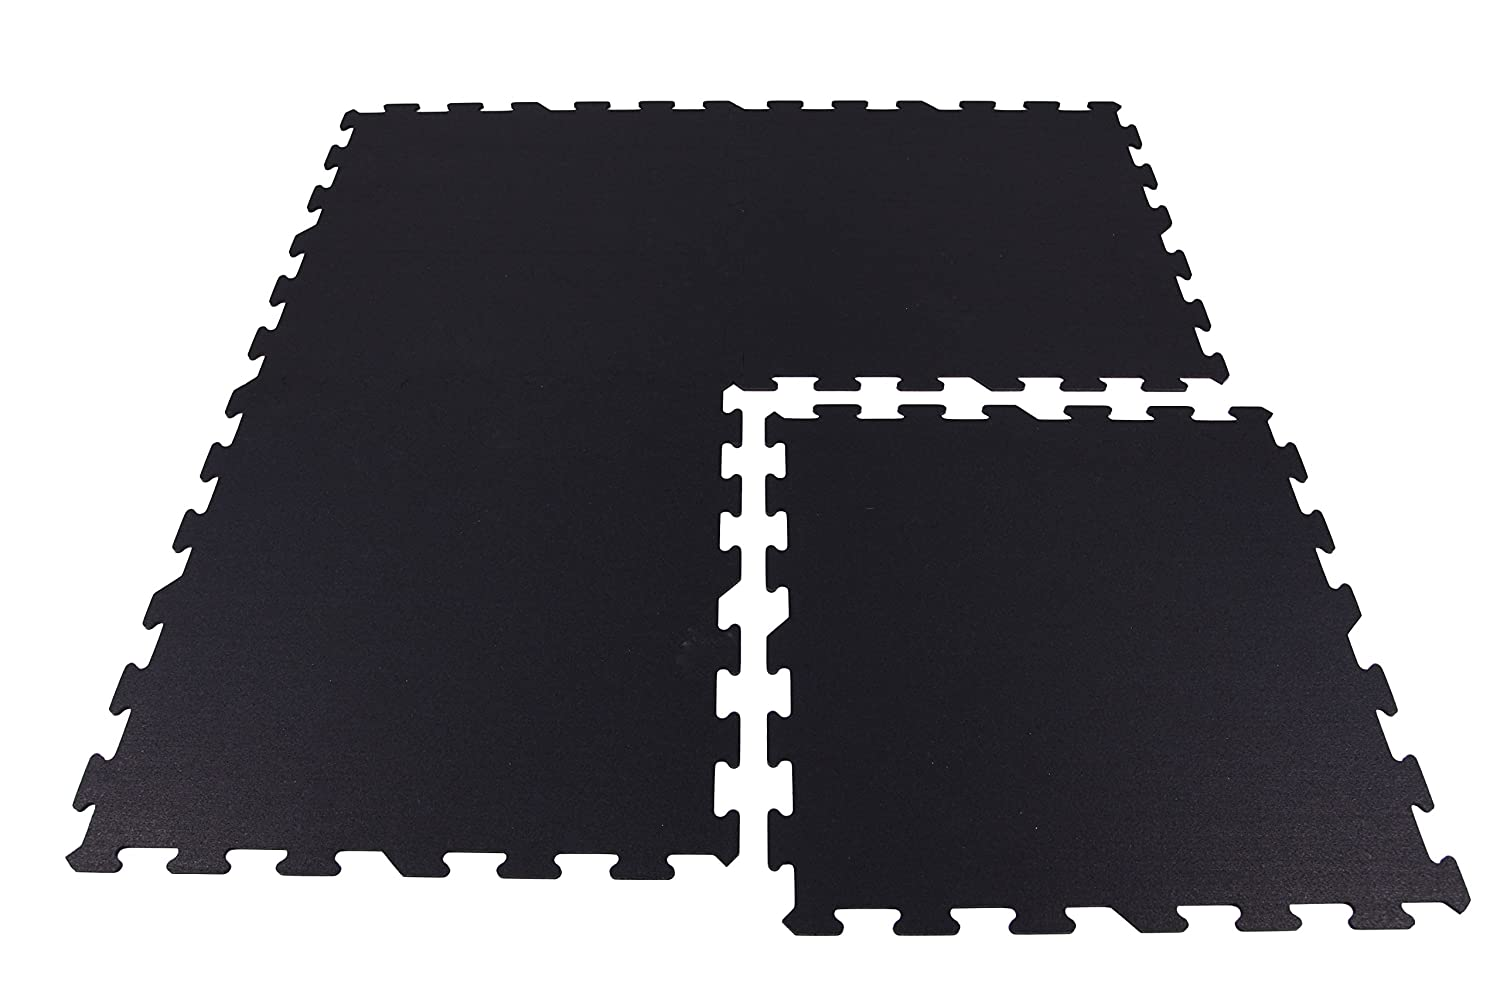 Incstores home gym flooring interlocking rubber tiles exercise incstores home gym flooring interlocking rubber tiles exercise equipment mats 4 tiles 16 sqft amazon dailygadgetfo Gallery